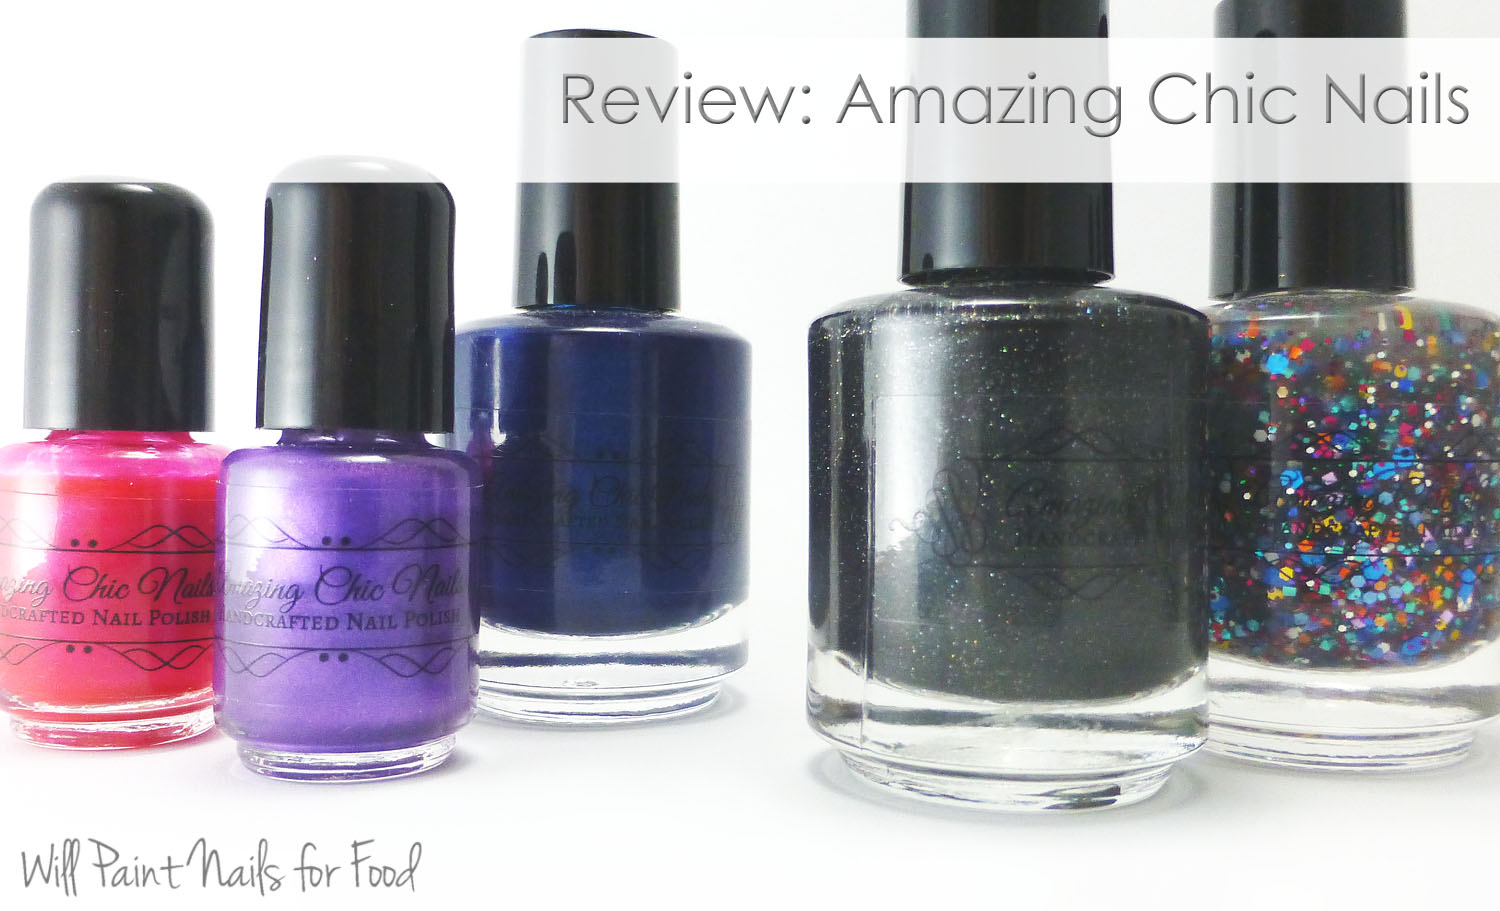 Amazing Chic Nails handcrafted nail polish